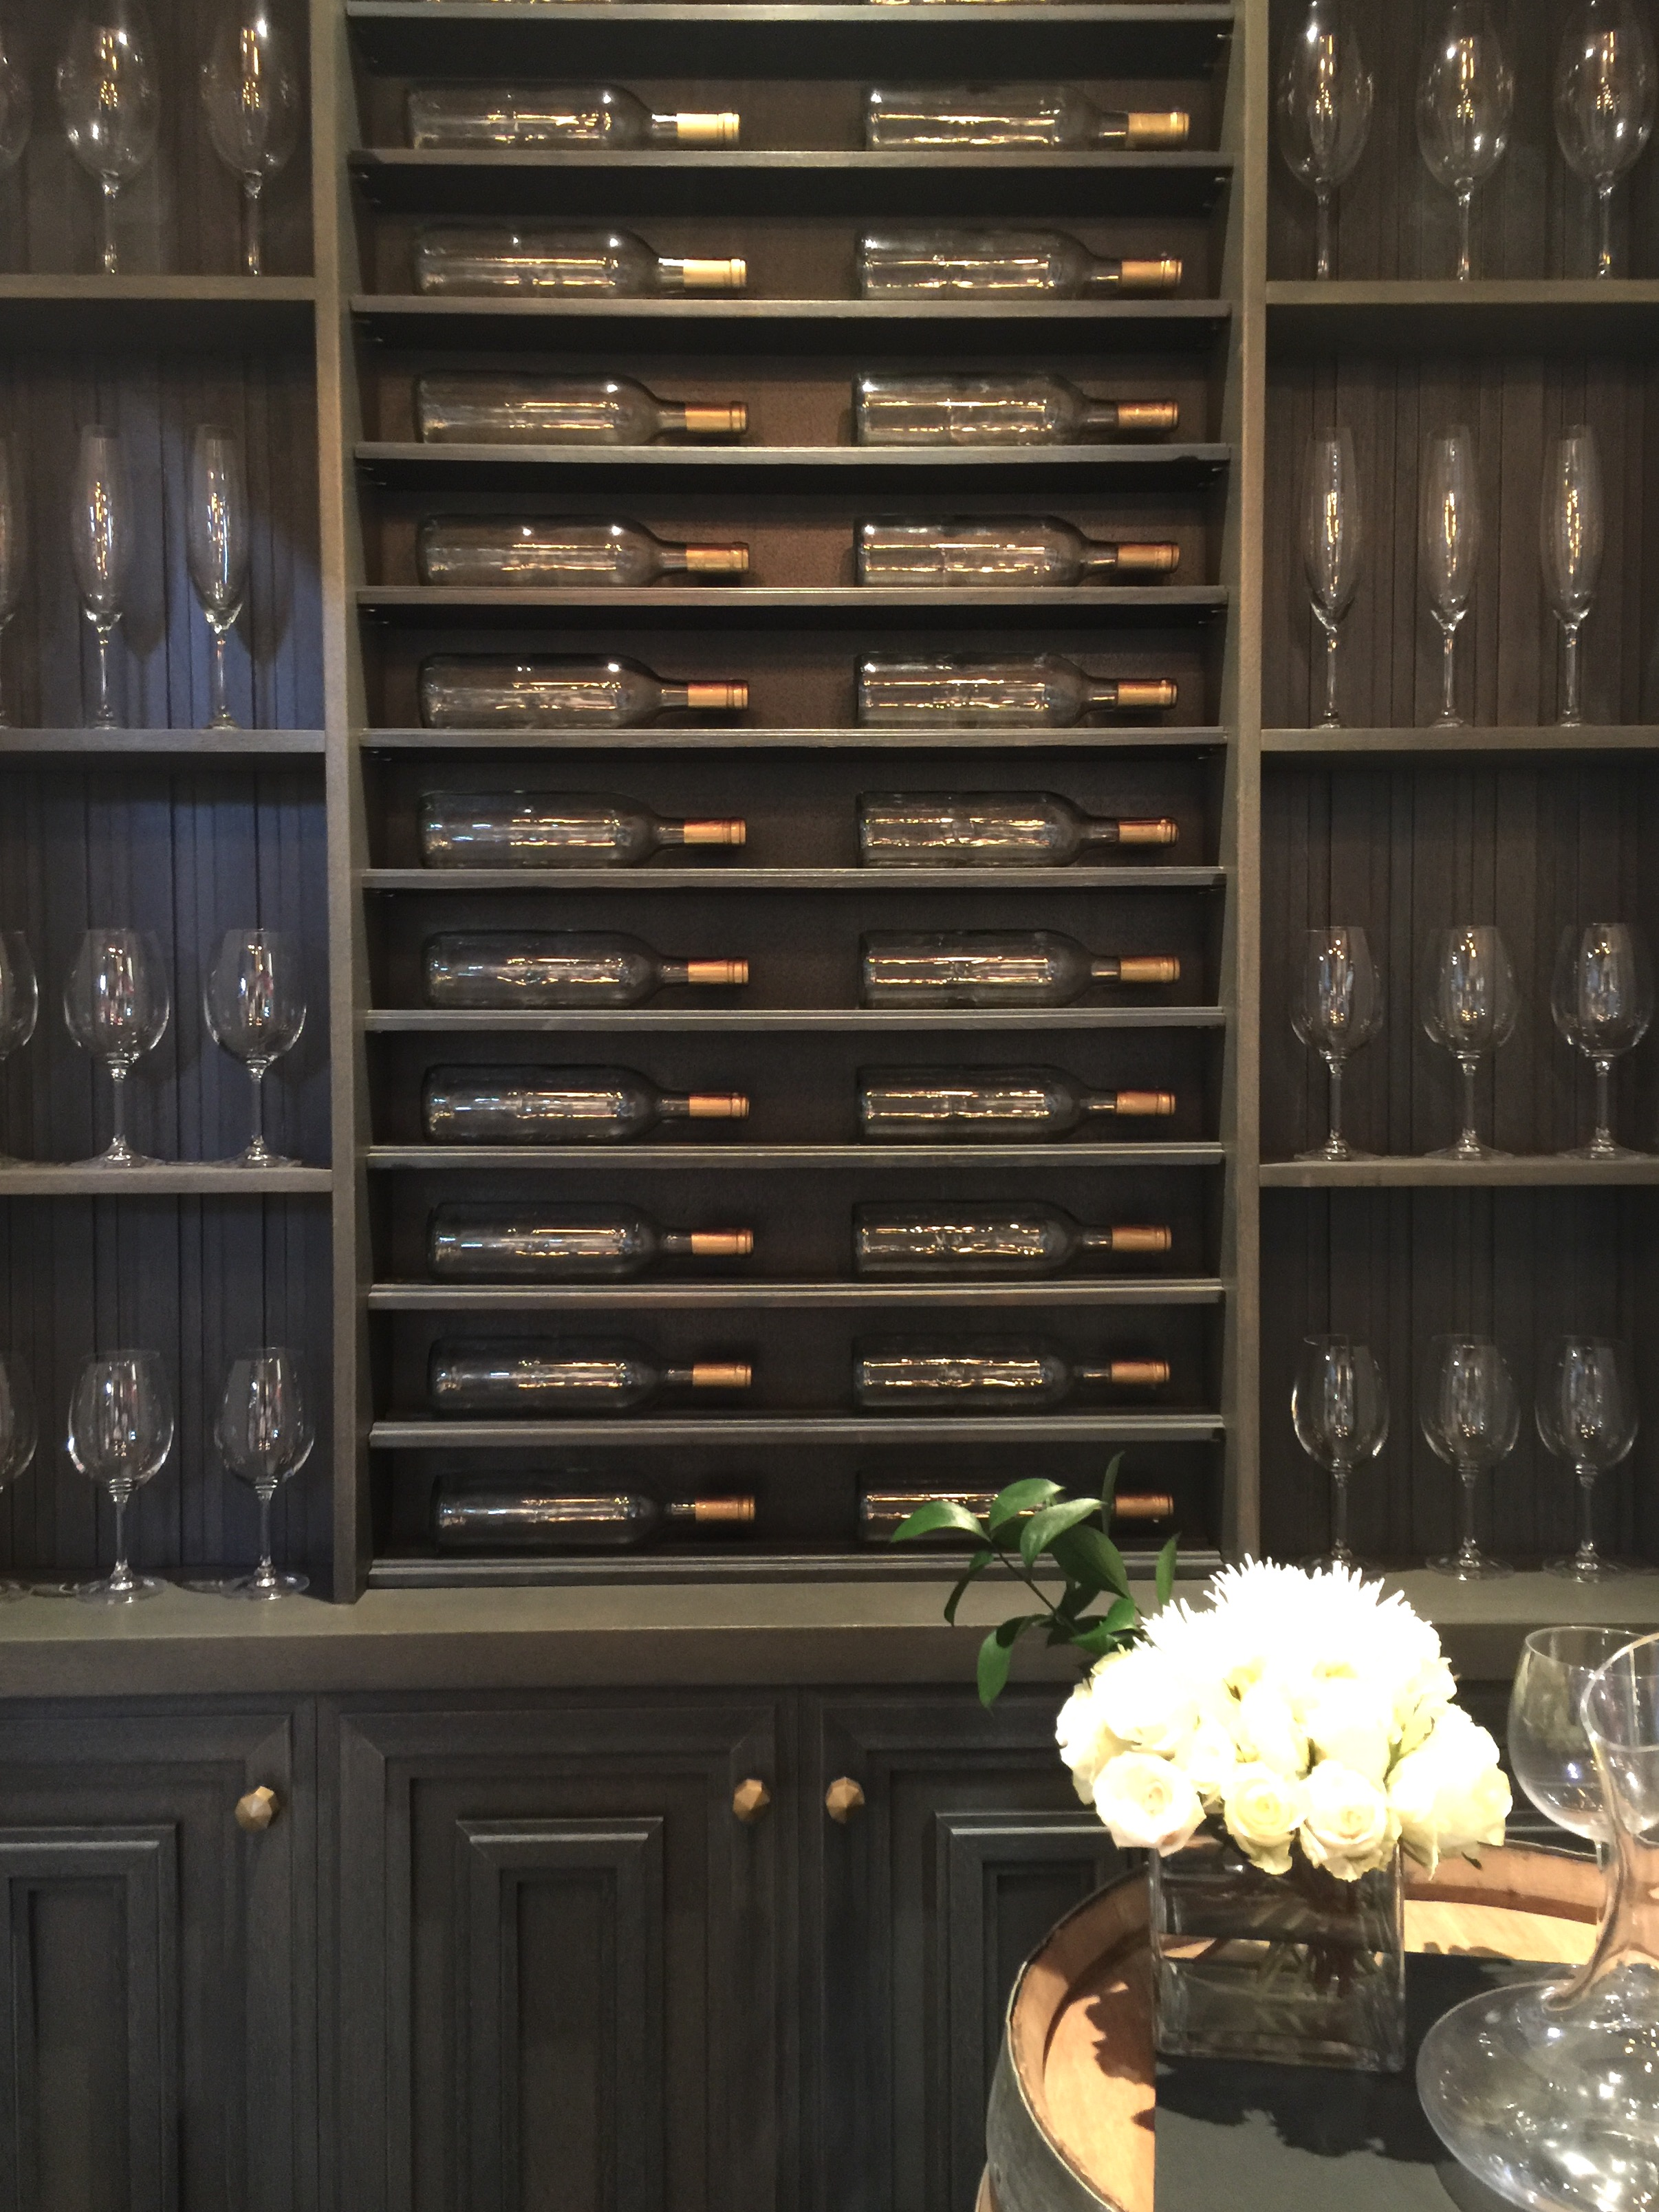 These mouldings and panelings were ingeniously put together on this wall to create some beautiful wine storage with a paneled look. #wineroom #mouldings #interiordesigntips